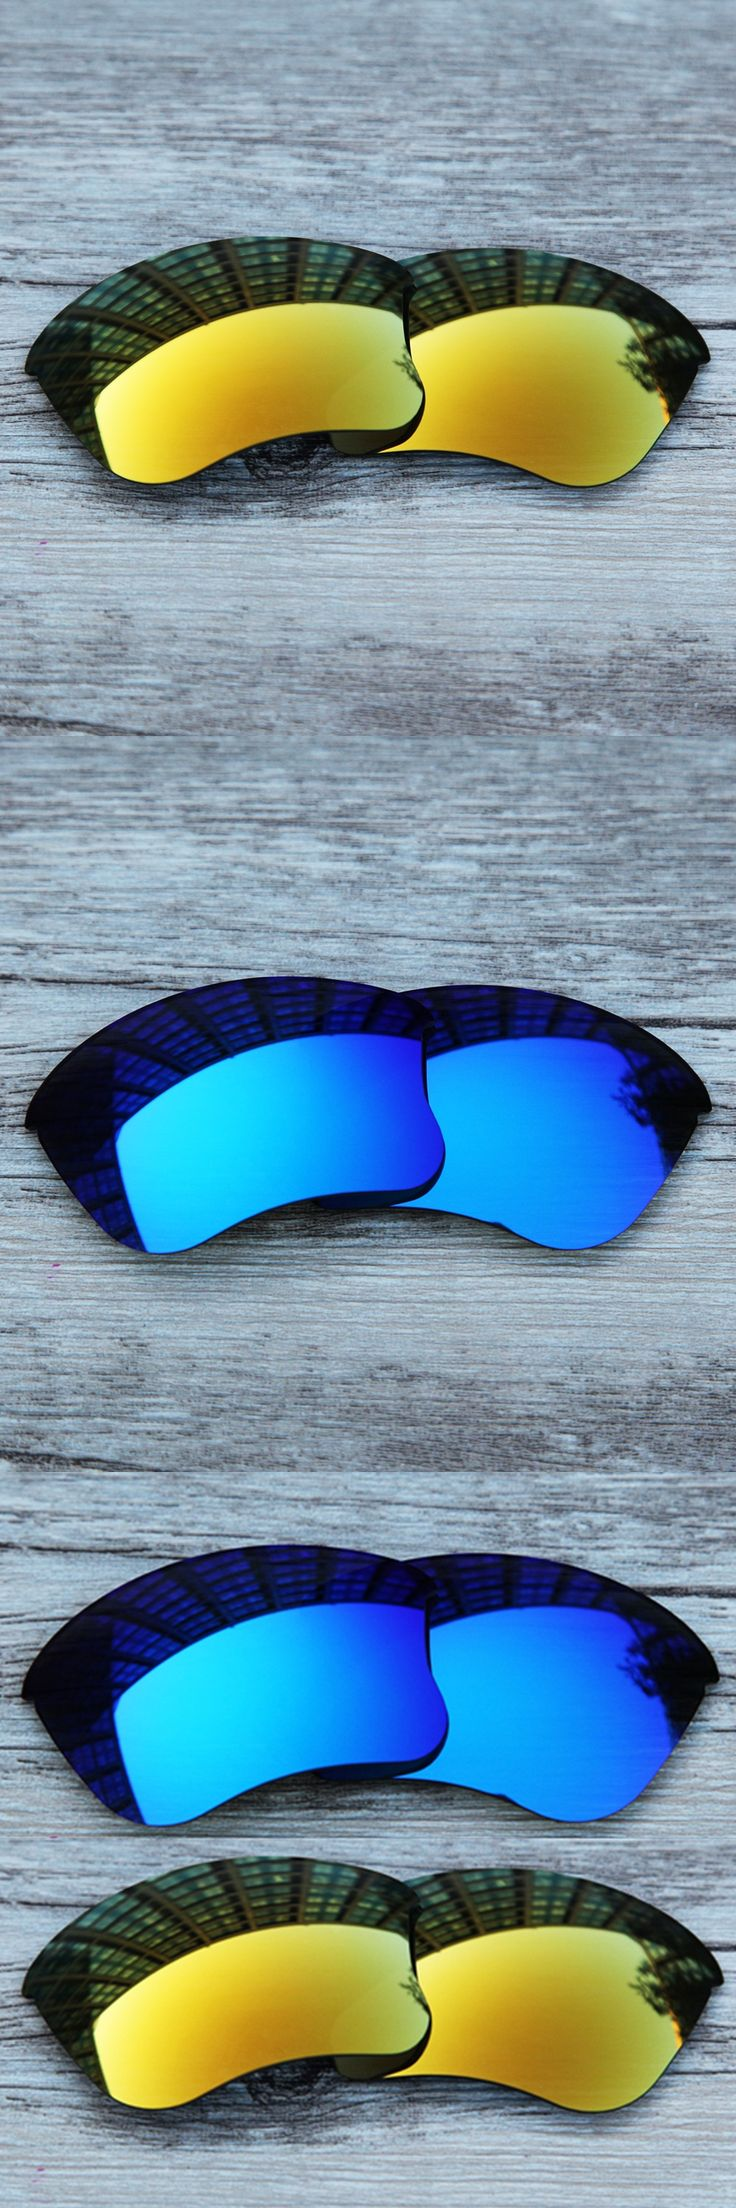 Inew polarized replacement lenses for  Flak Jacket XLJ blue and gold